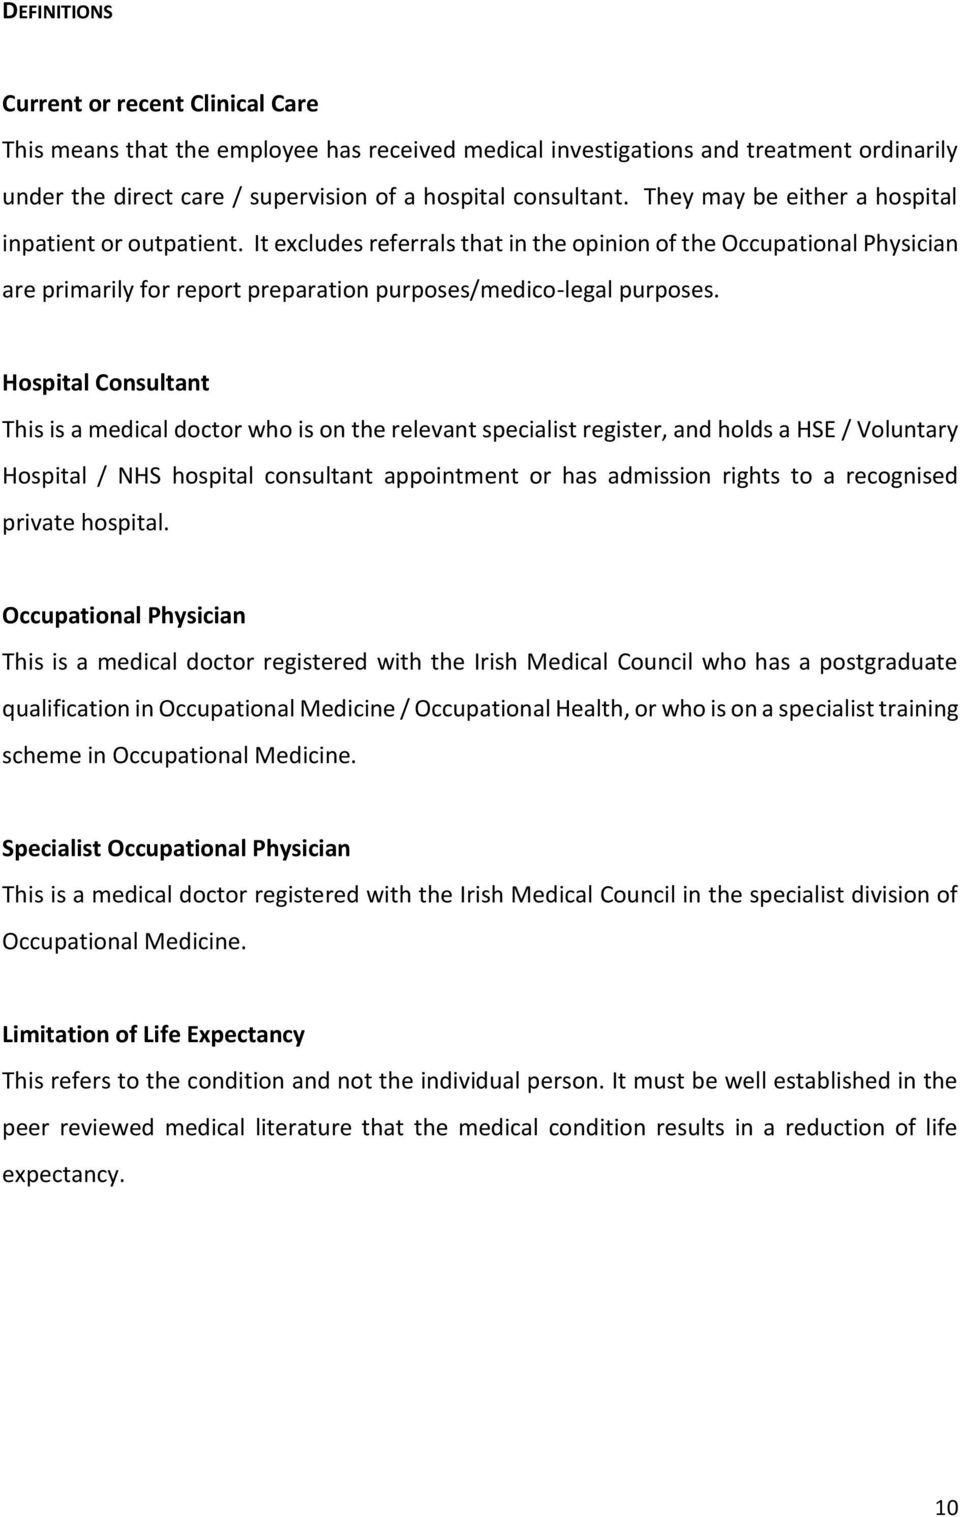 Hospital Consultant This is a medical doctor who is on the relevant specialist register, and holds a HSE / Voluntary Hospital / NHS hospital consultant appointment or has admission rights to a